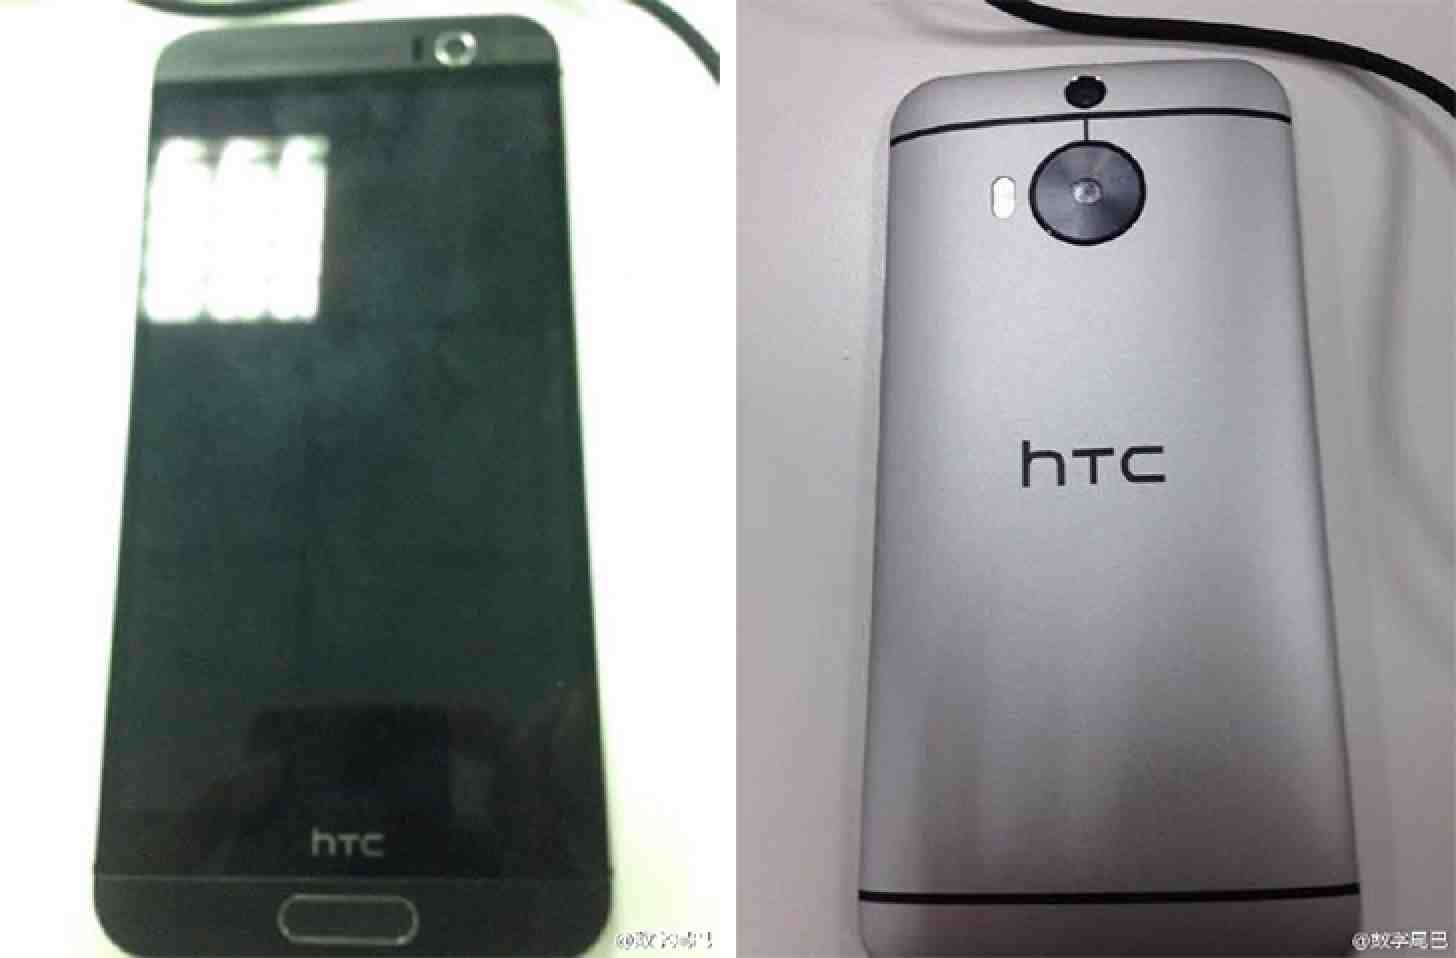 HTC-One-M9-Plus-HTC-Desire-A55-leaked-images-3.jpg